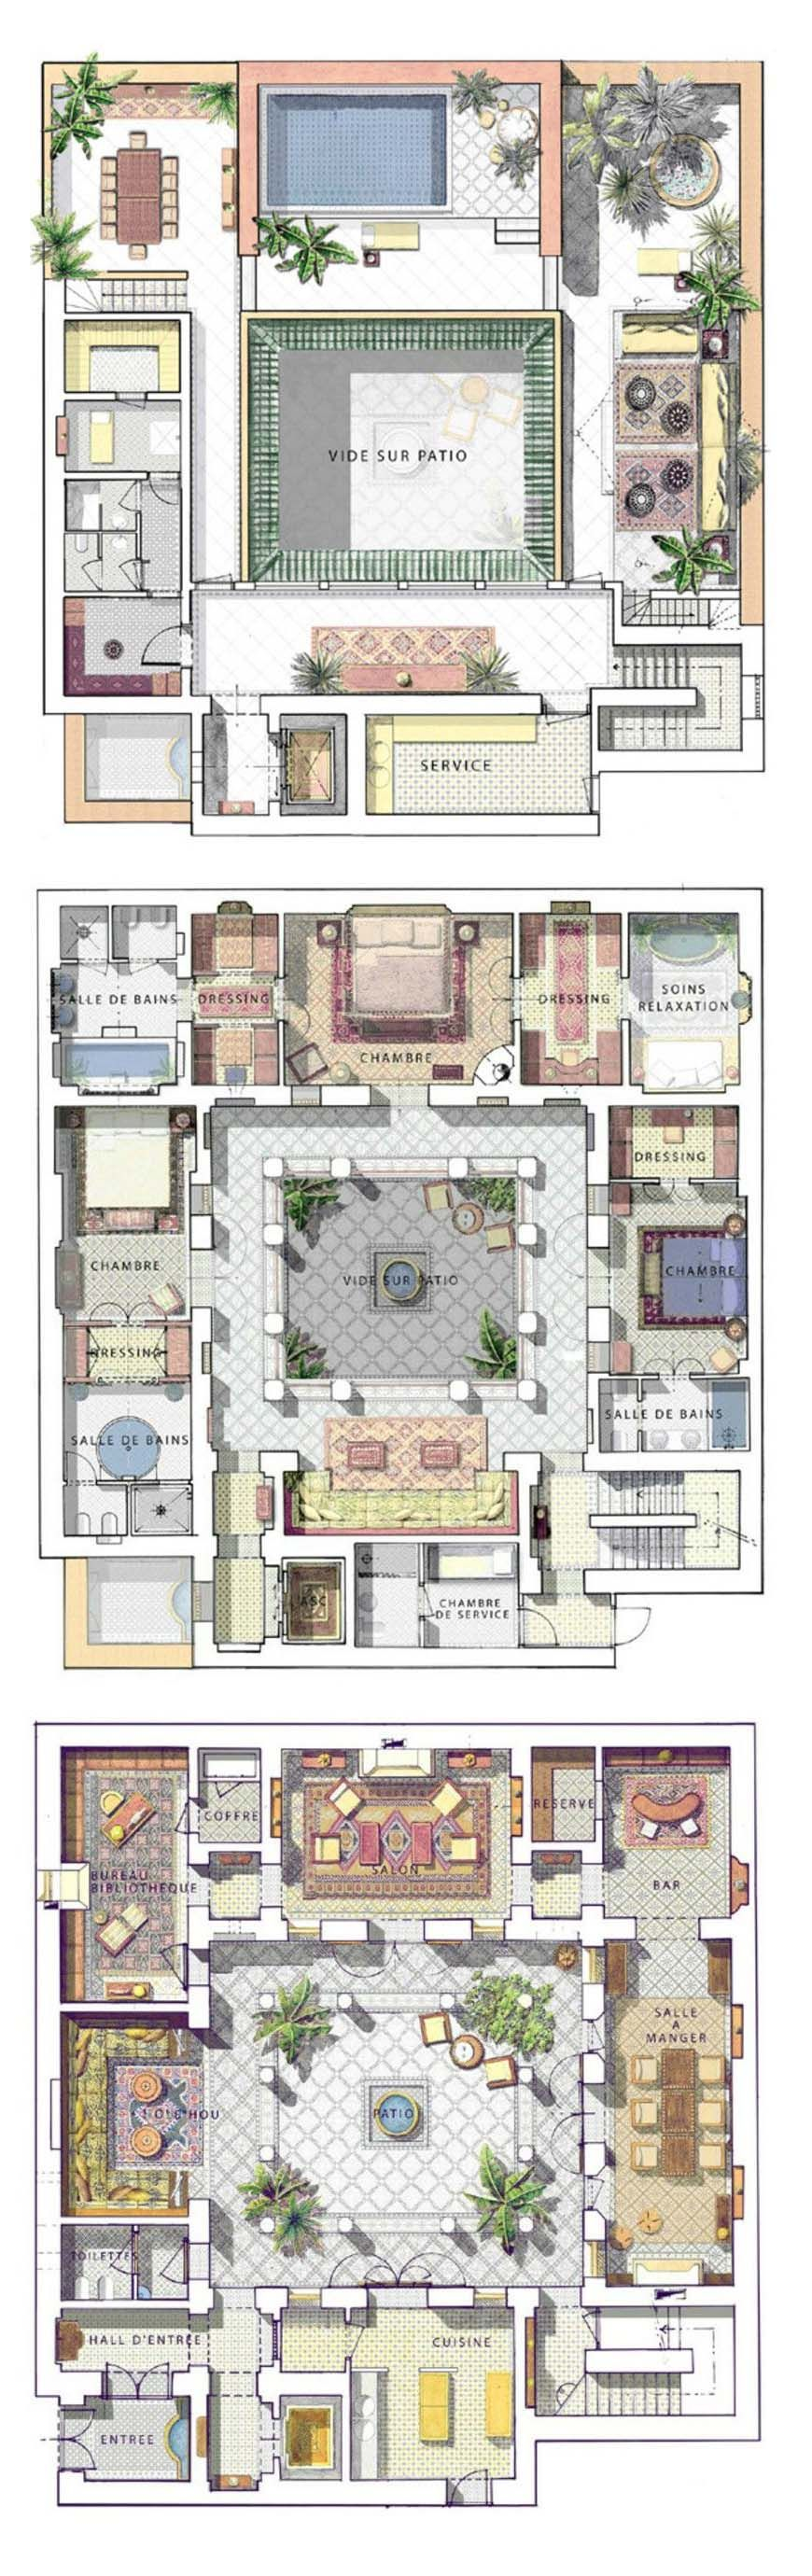 Pin By James Sundance On Architecture Sims House Plans Courtyard House Plans House Plans